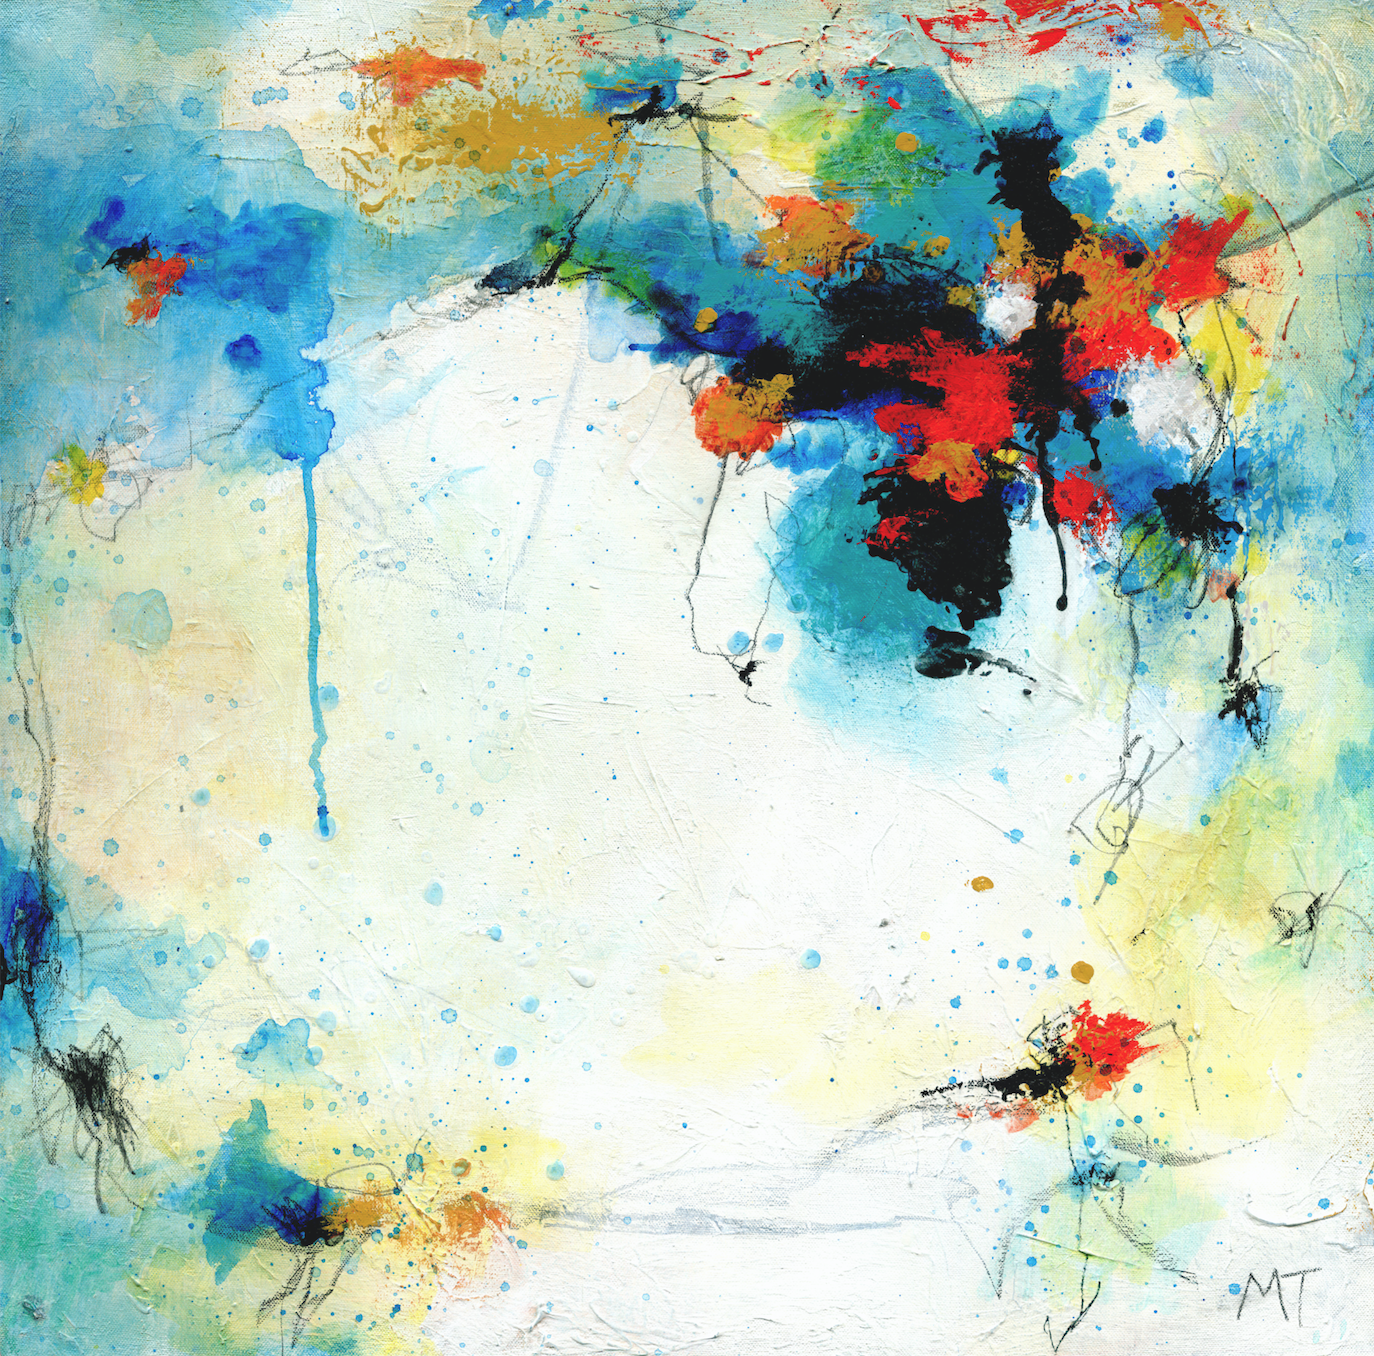 Feist-abstract-art-energy-colorful-mandy-thompson.png